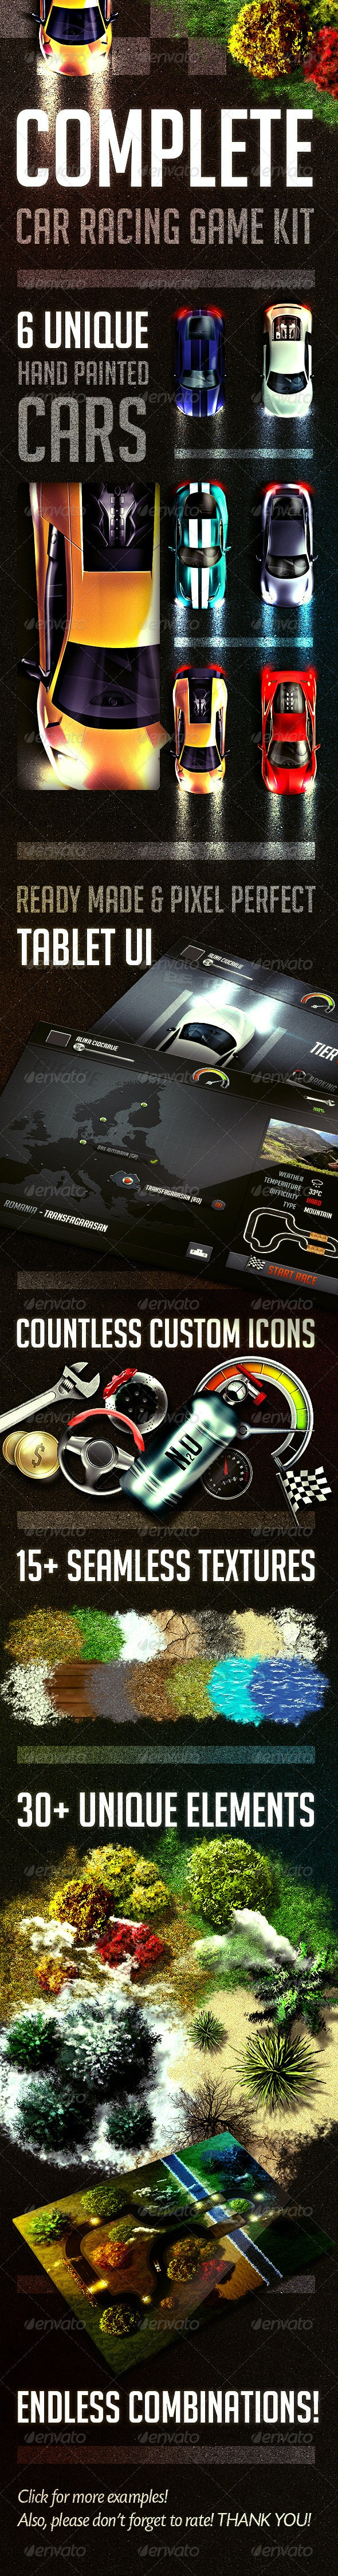 Complete Car Racing Game Kit - Game Kits Game Assets